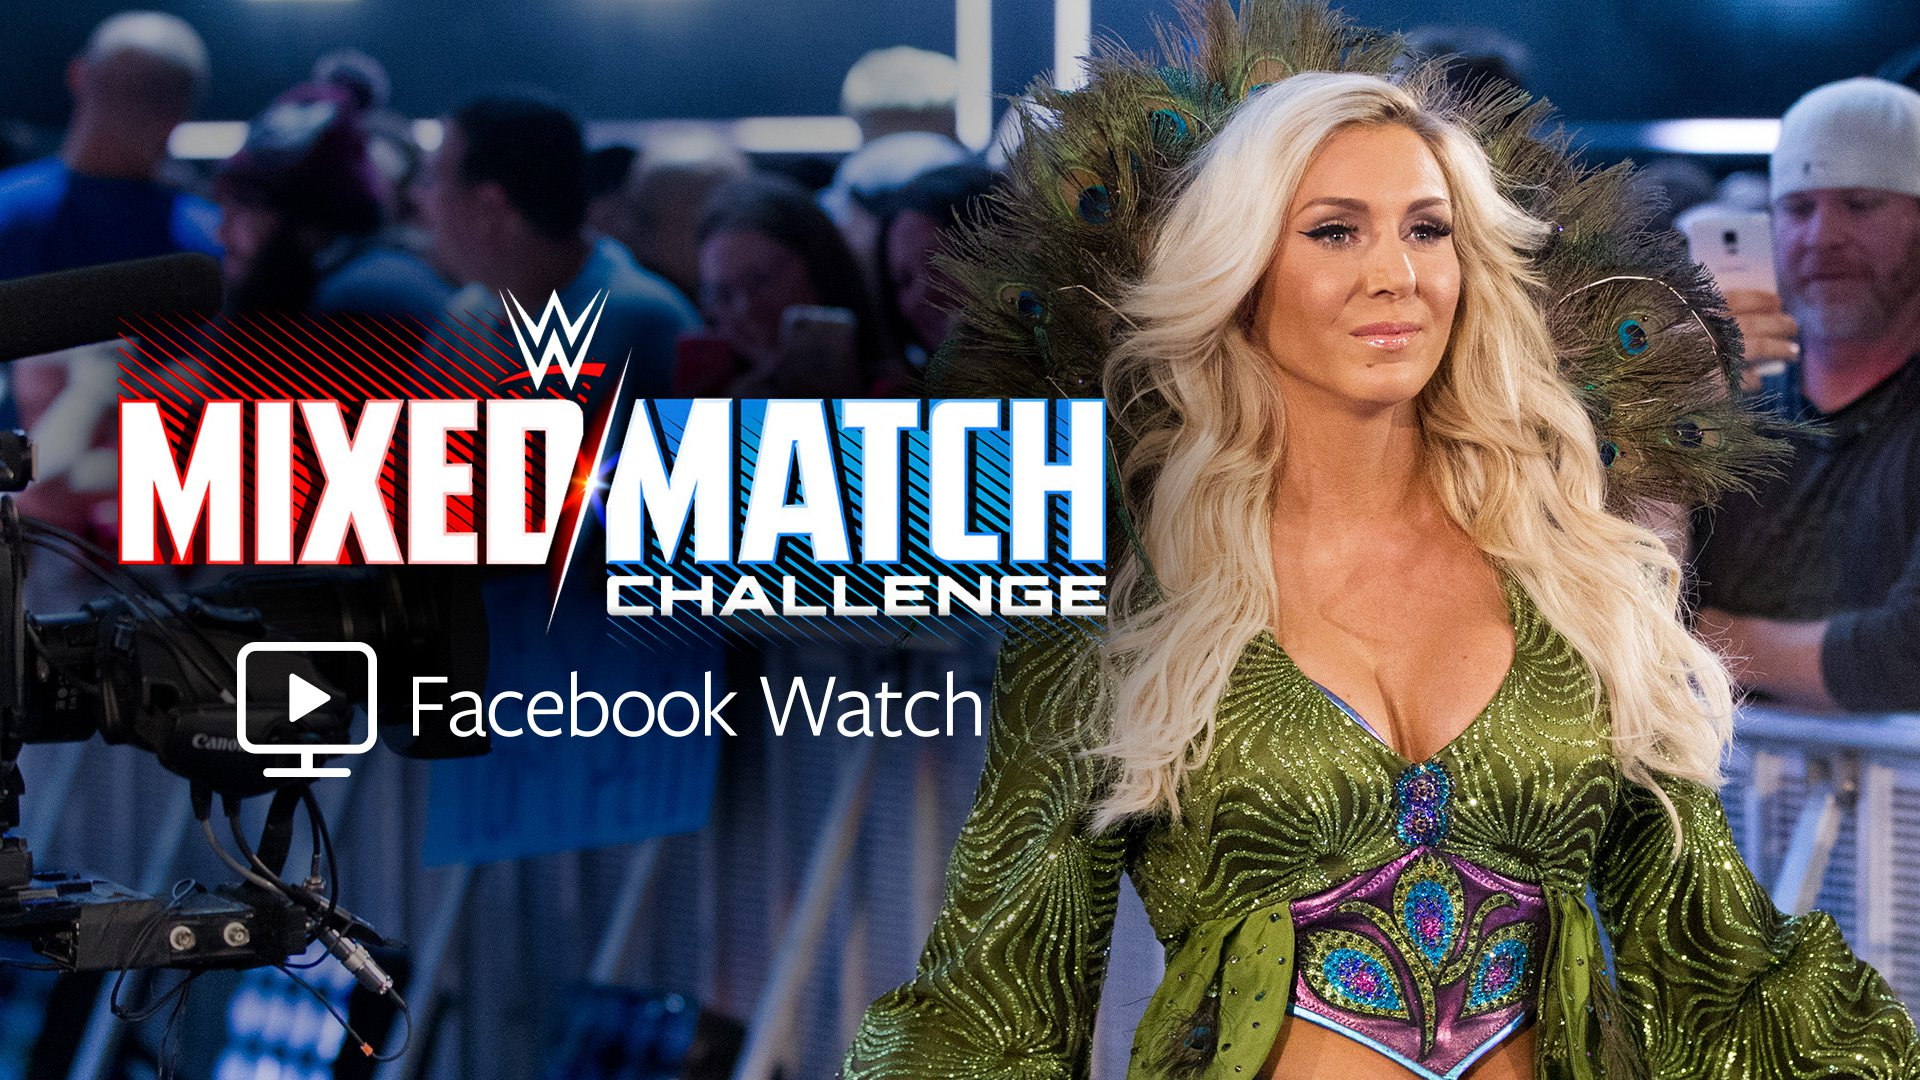 Mixed Match Challenge Viewership Numbers On Facebook Watch